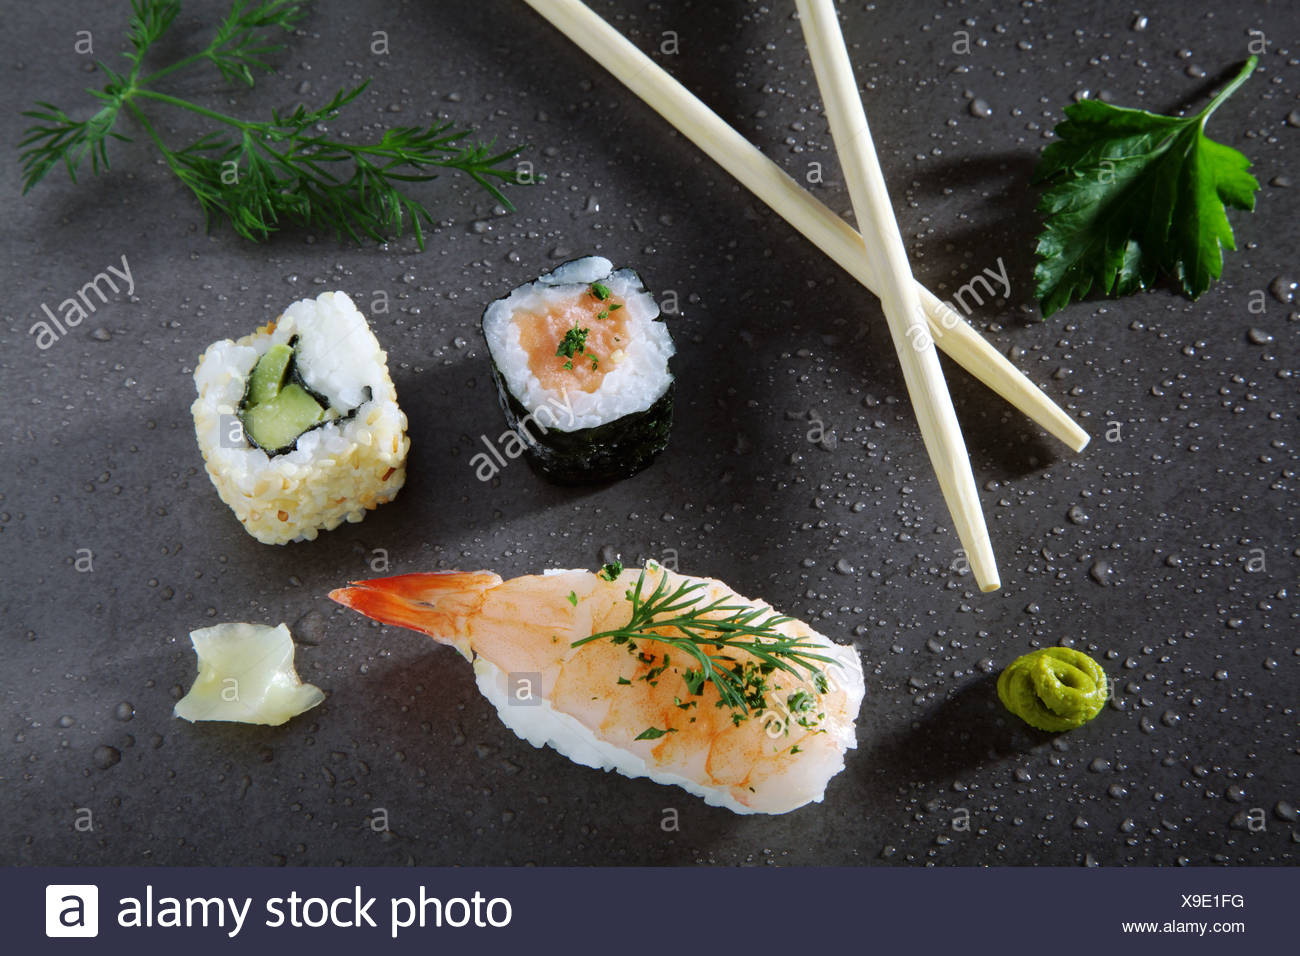 Assorted sushi with ginger and wasabi on a stone surface - Stock Image